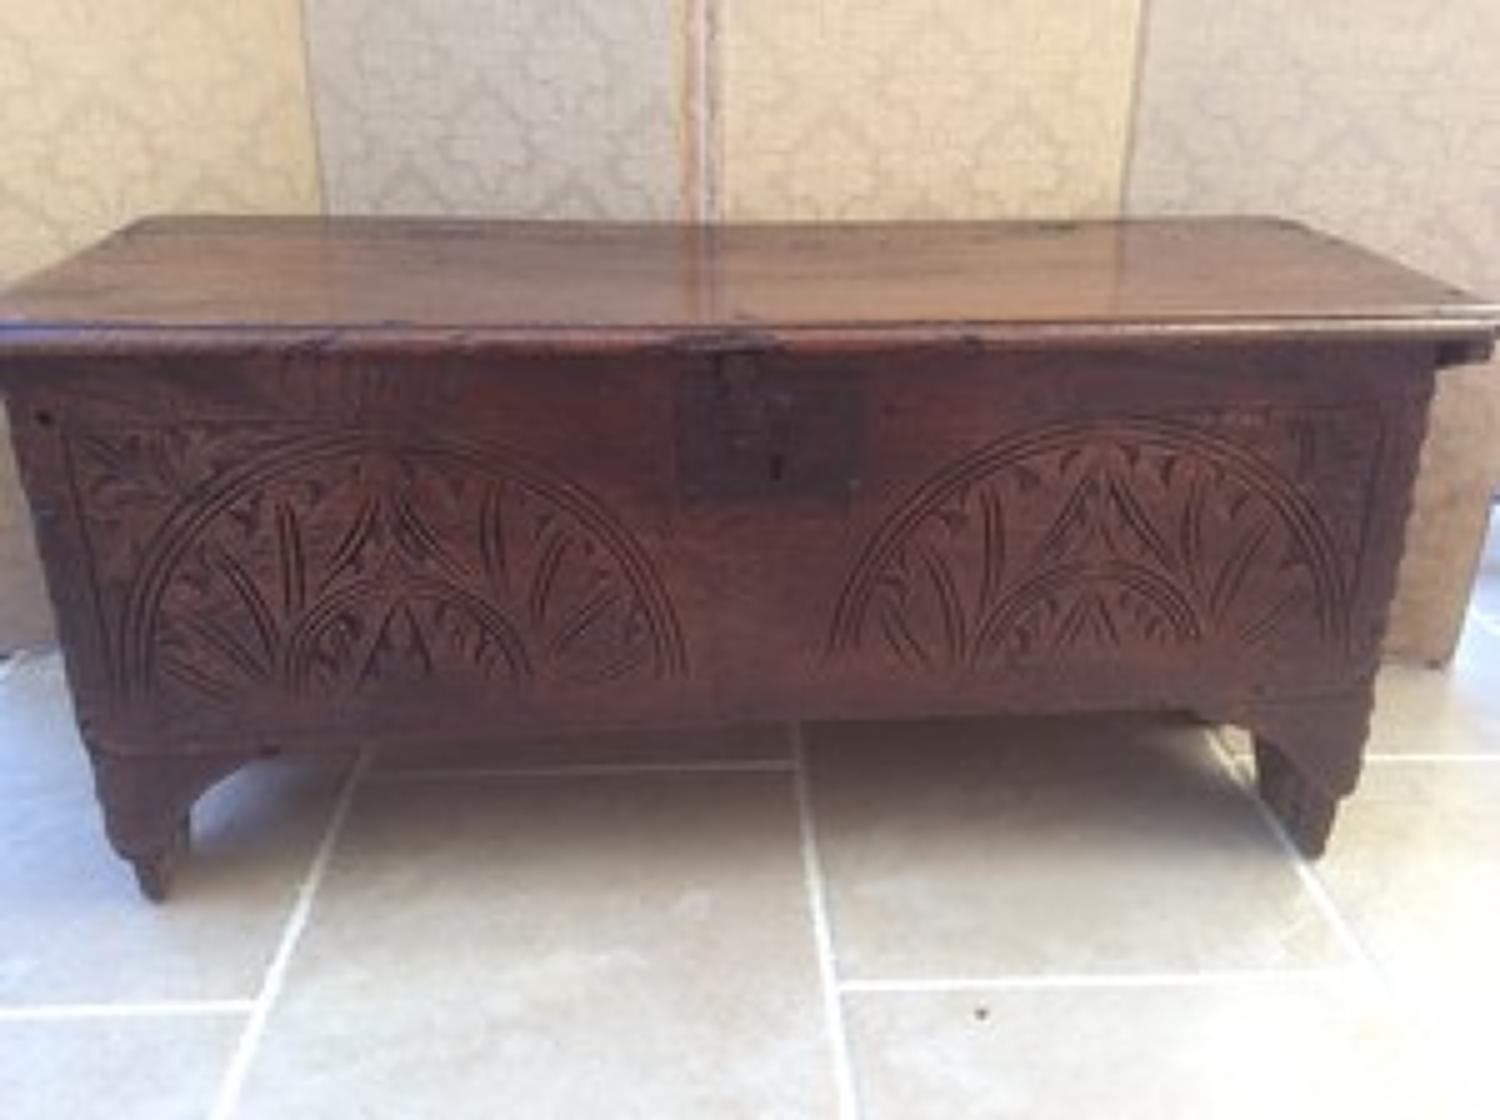 Restoration Period boarded elm chest